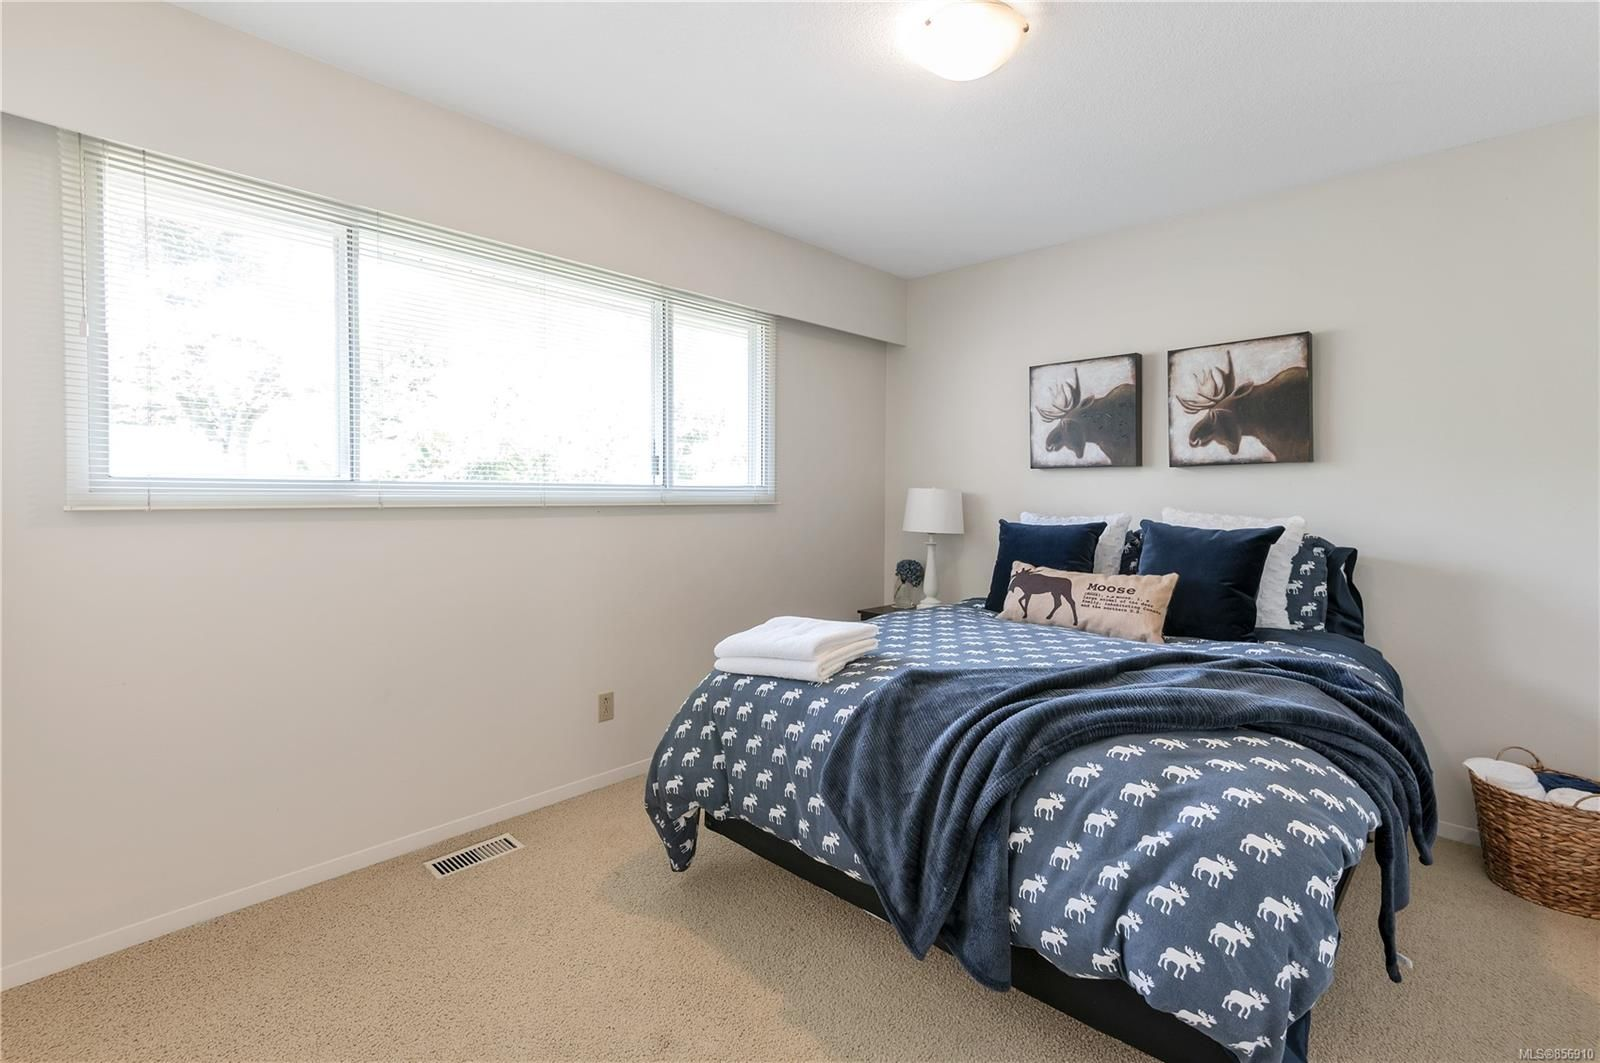 Photo 30: Photos: 215 S Alder St in : CR Campbell River Central House for sale (Campbell River)  : MLS®# 856910